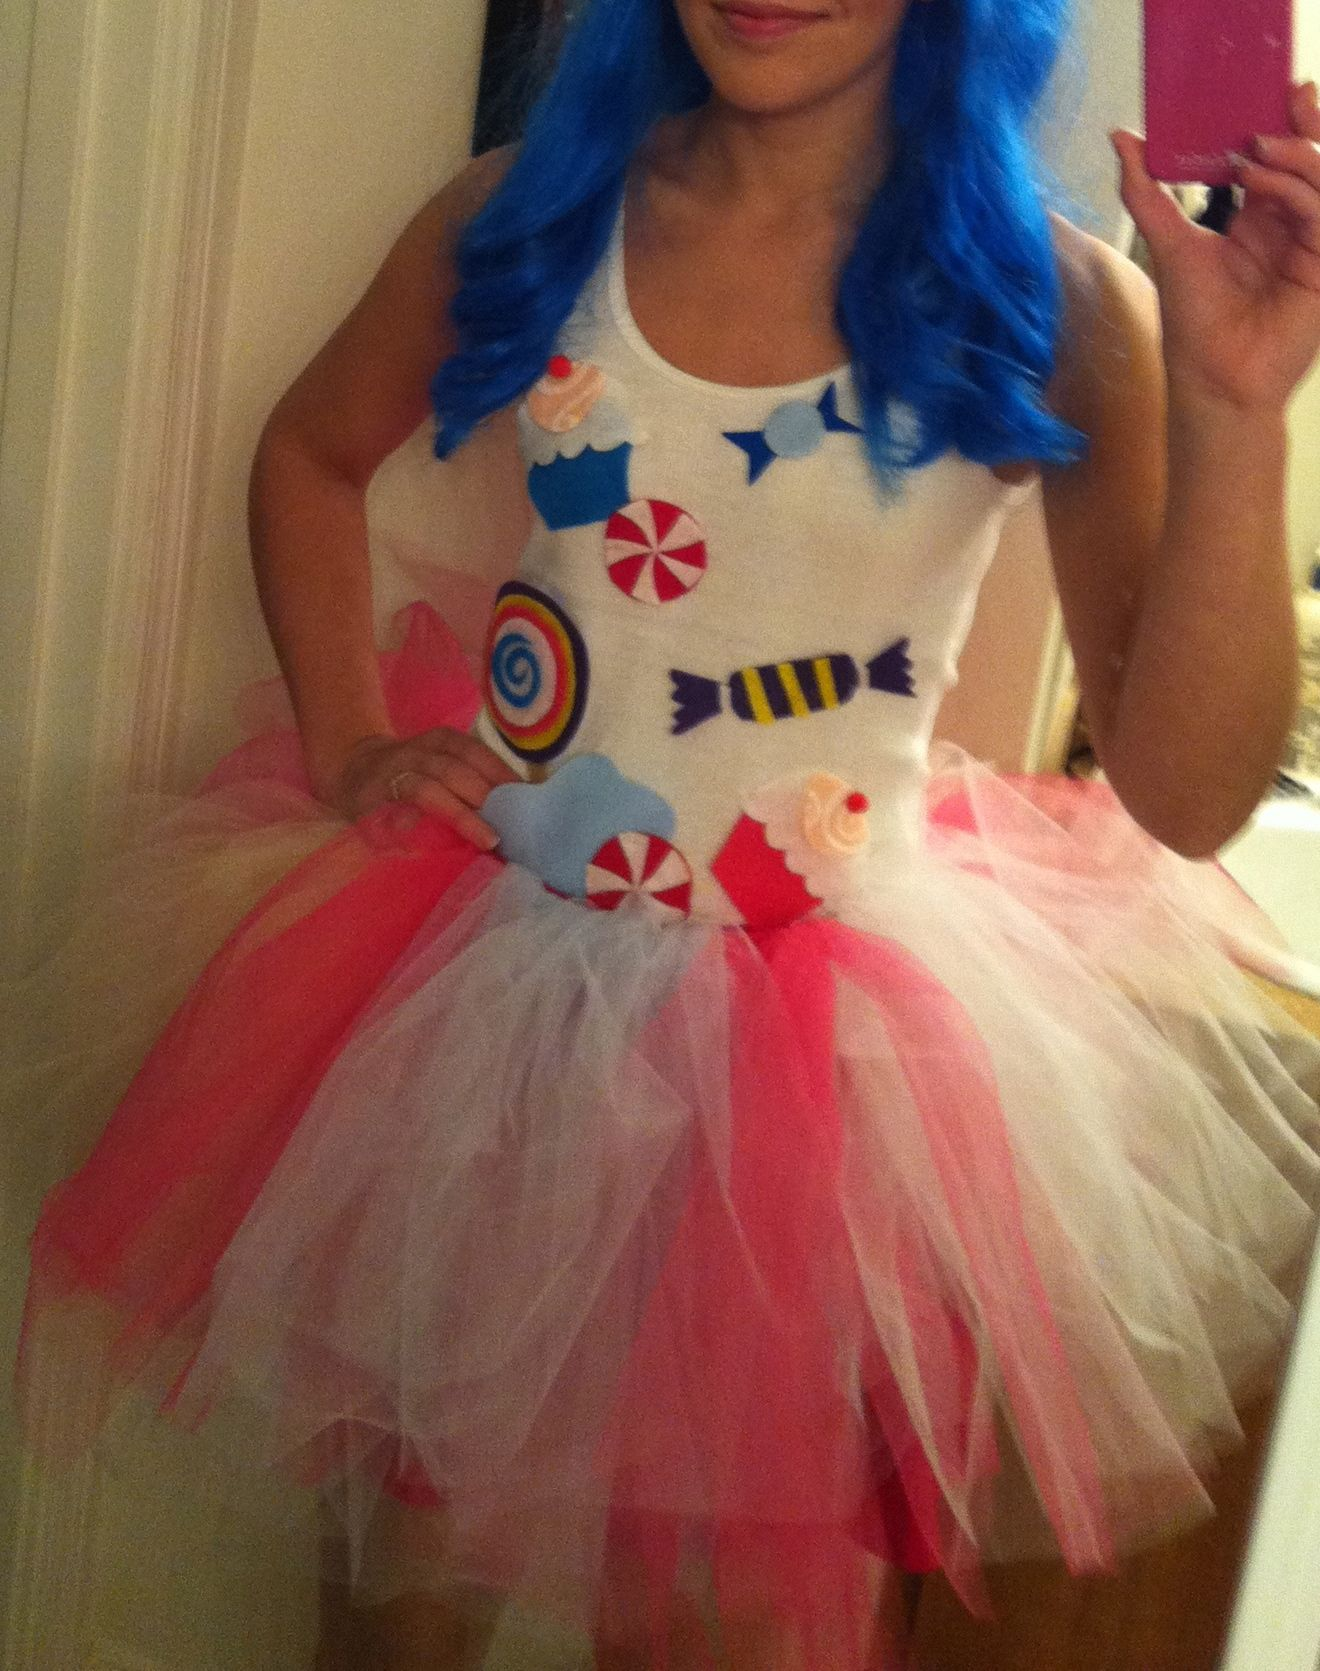 116da2211d6b Katy Perry  Blue hair. Make candy and cupcakes out of felt